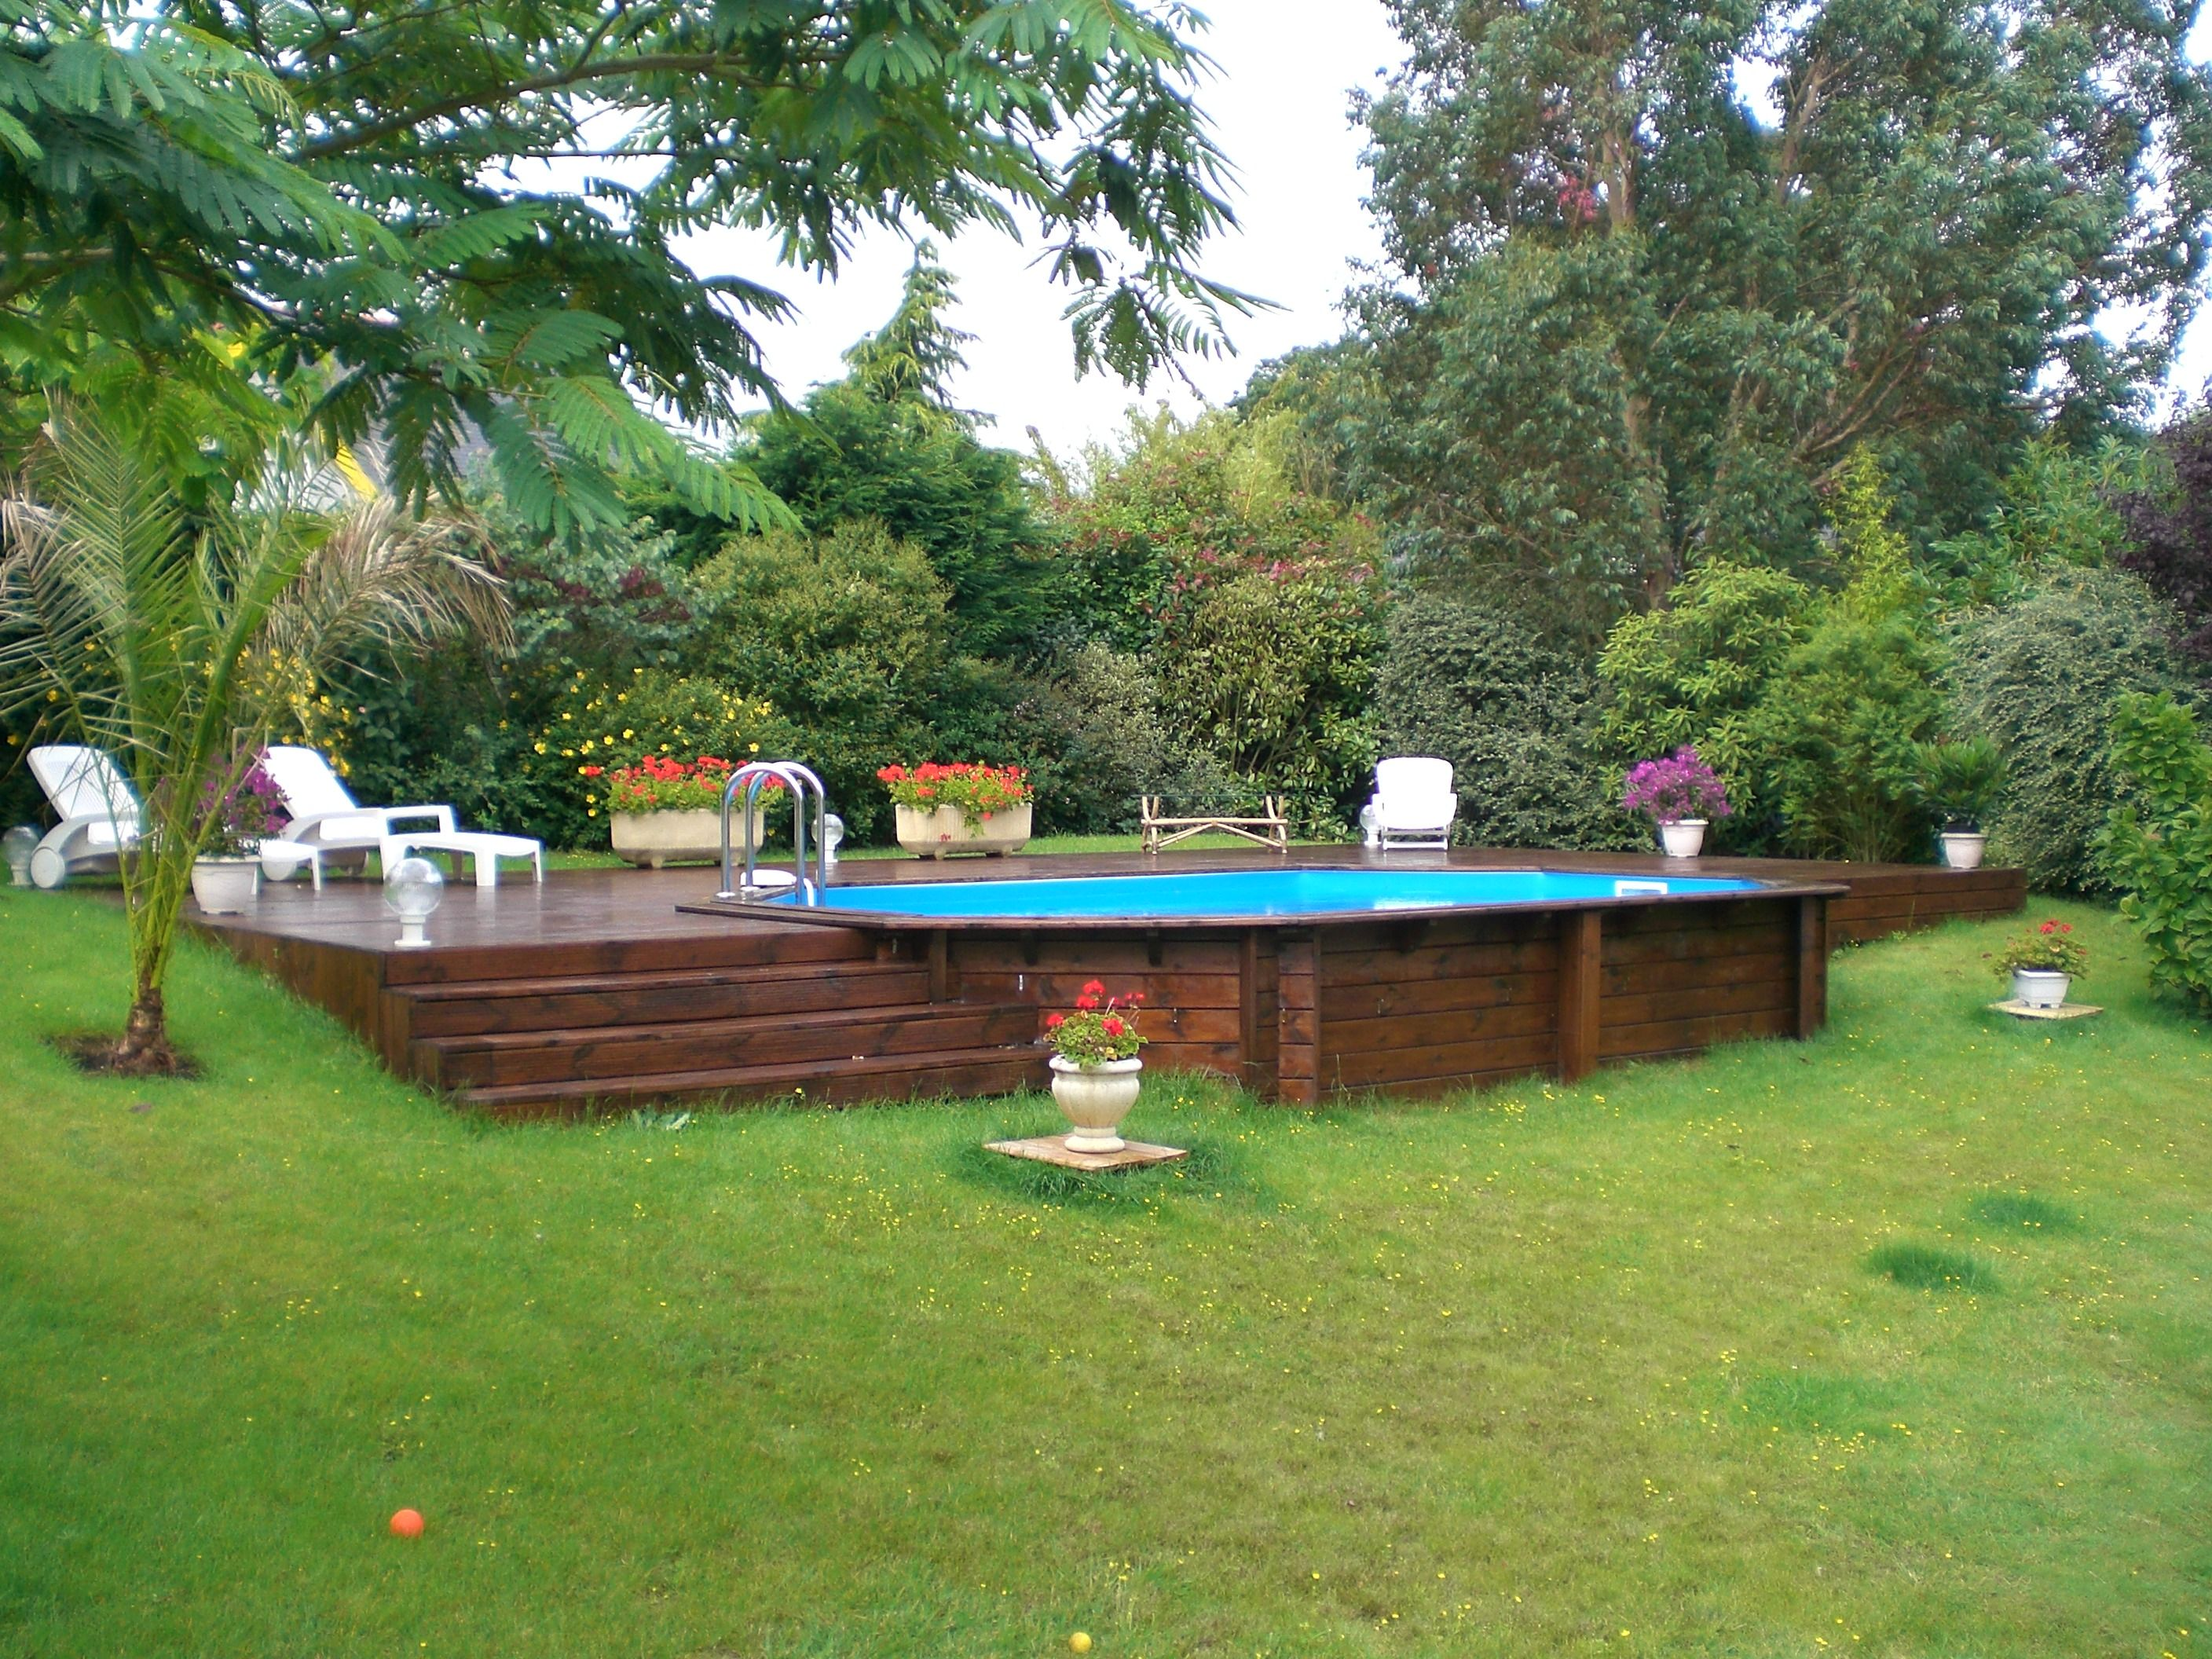 Piscine hors sol en bois semi enterr e sur terrain en for Piscine kit bois semi enterree